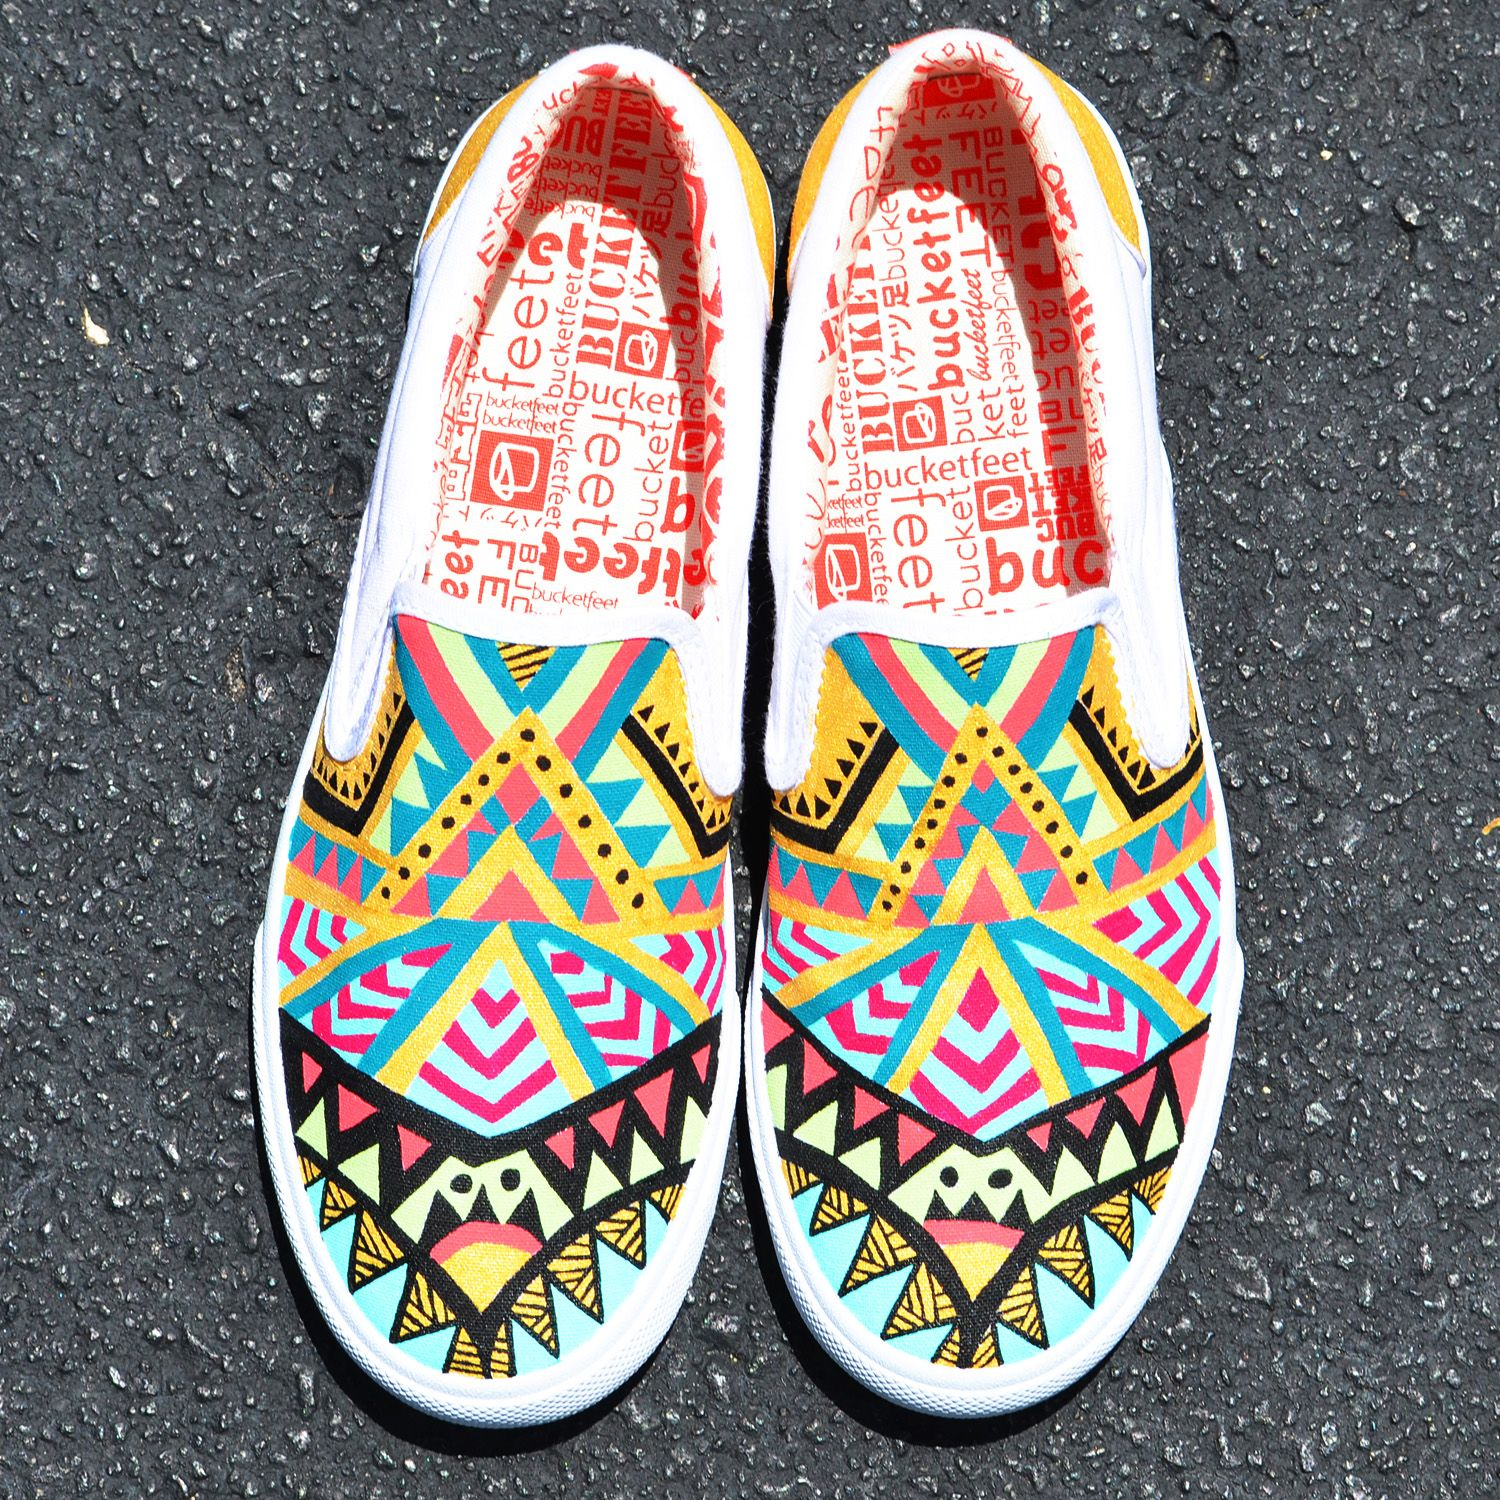 a52968bee55646 Custom DIY  bucketfeet slip-ons painted using multi-surface acrylic paint.  Click on image for another of my Bucketfeet designs.